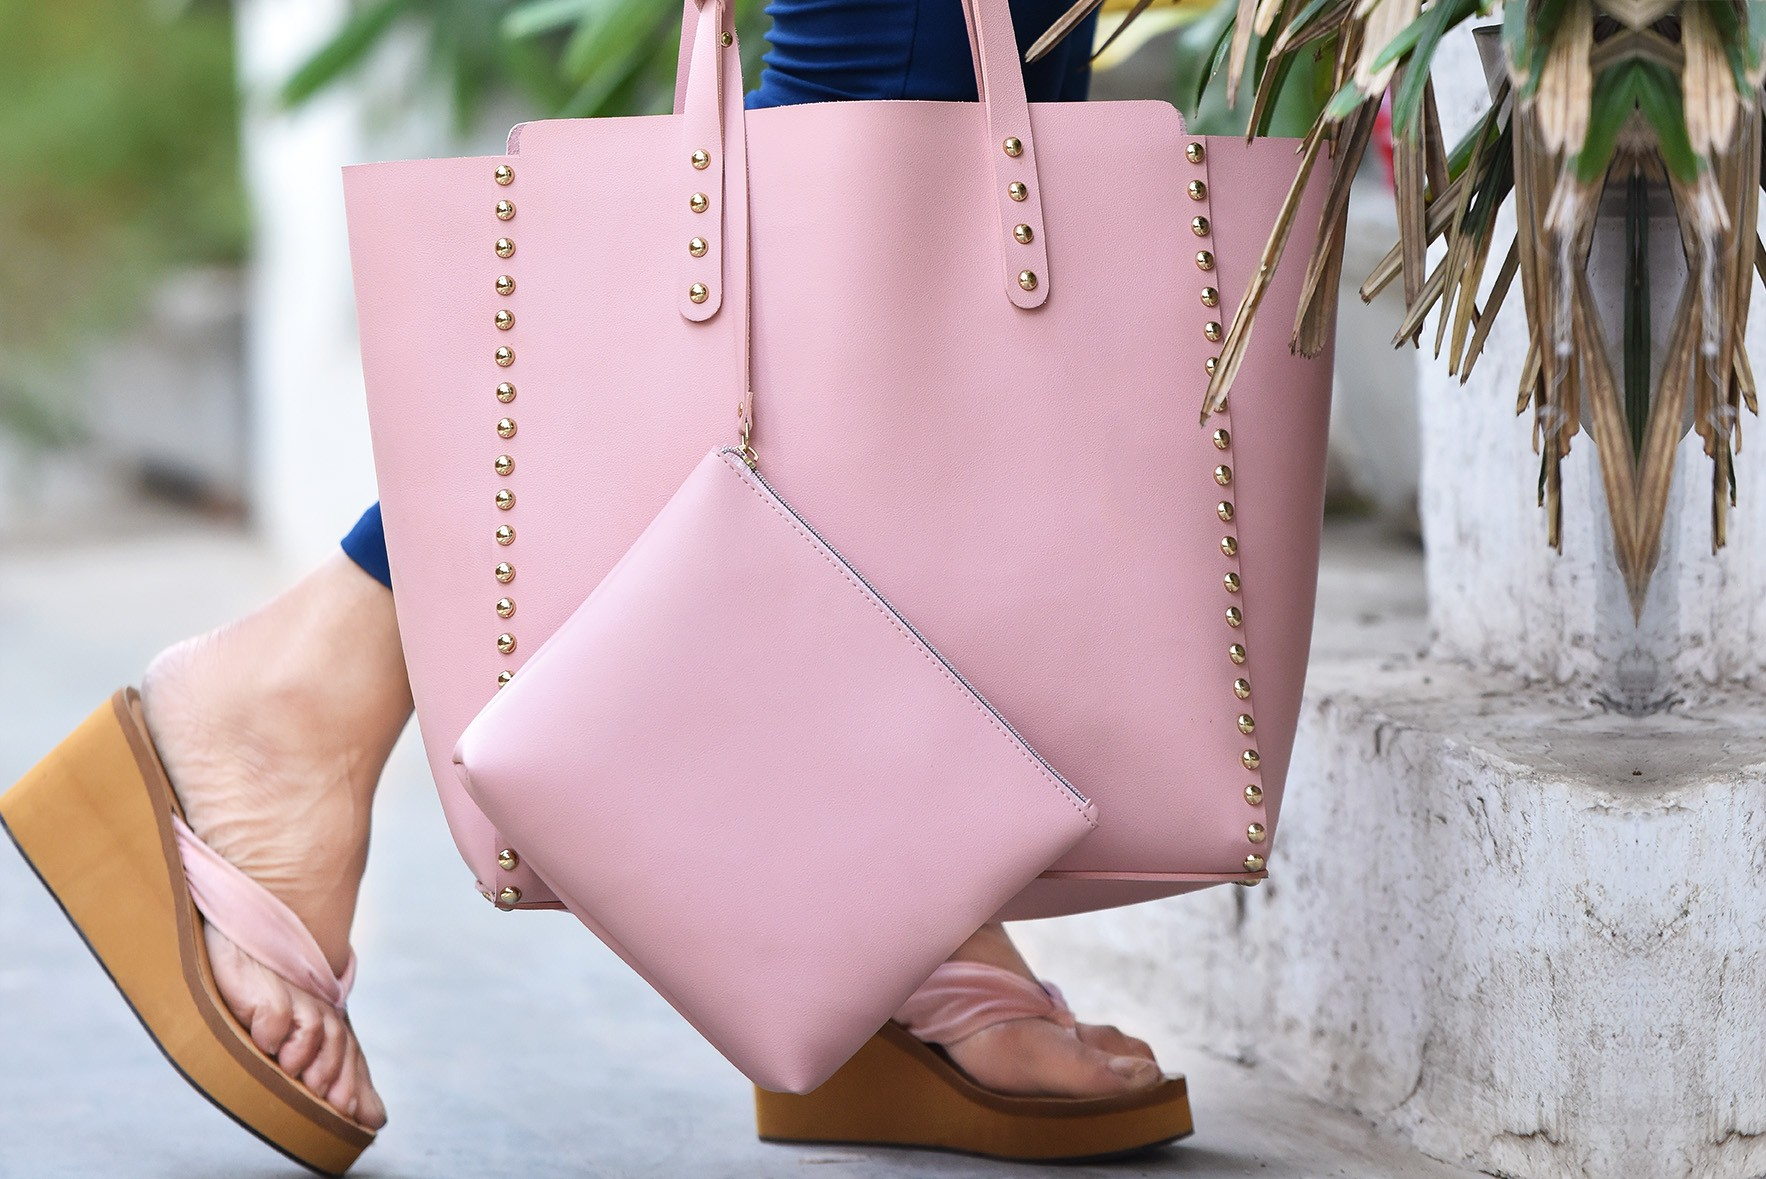 Set - Elegant carry all bags Pink